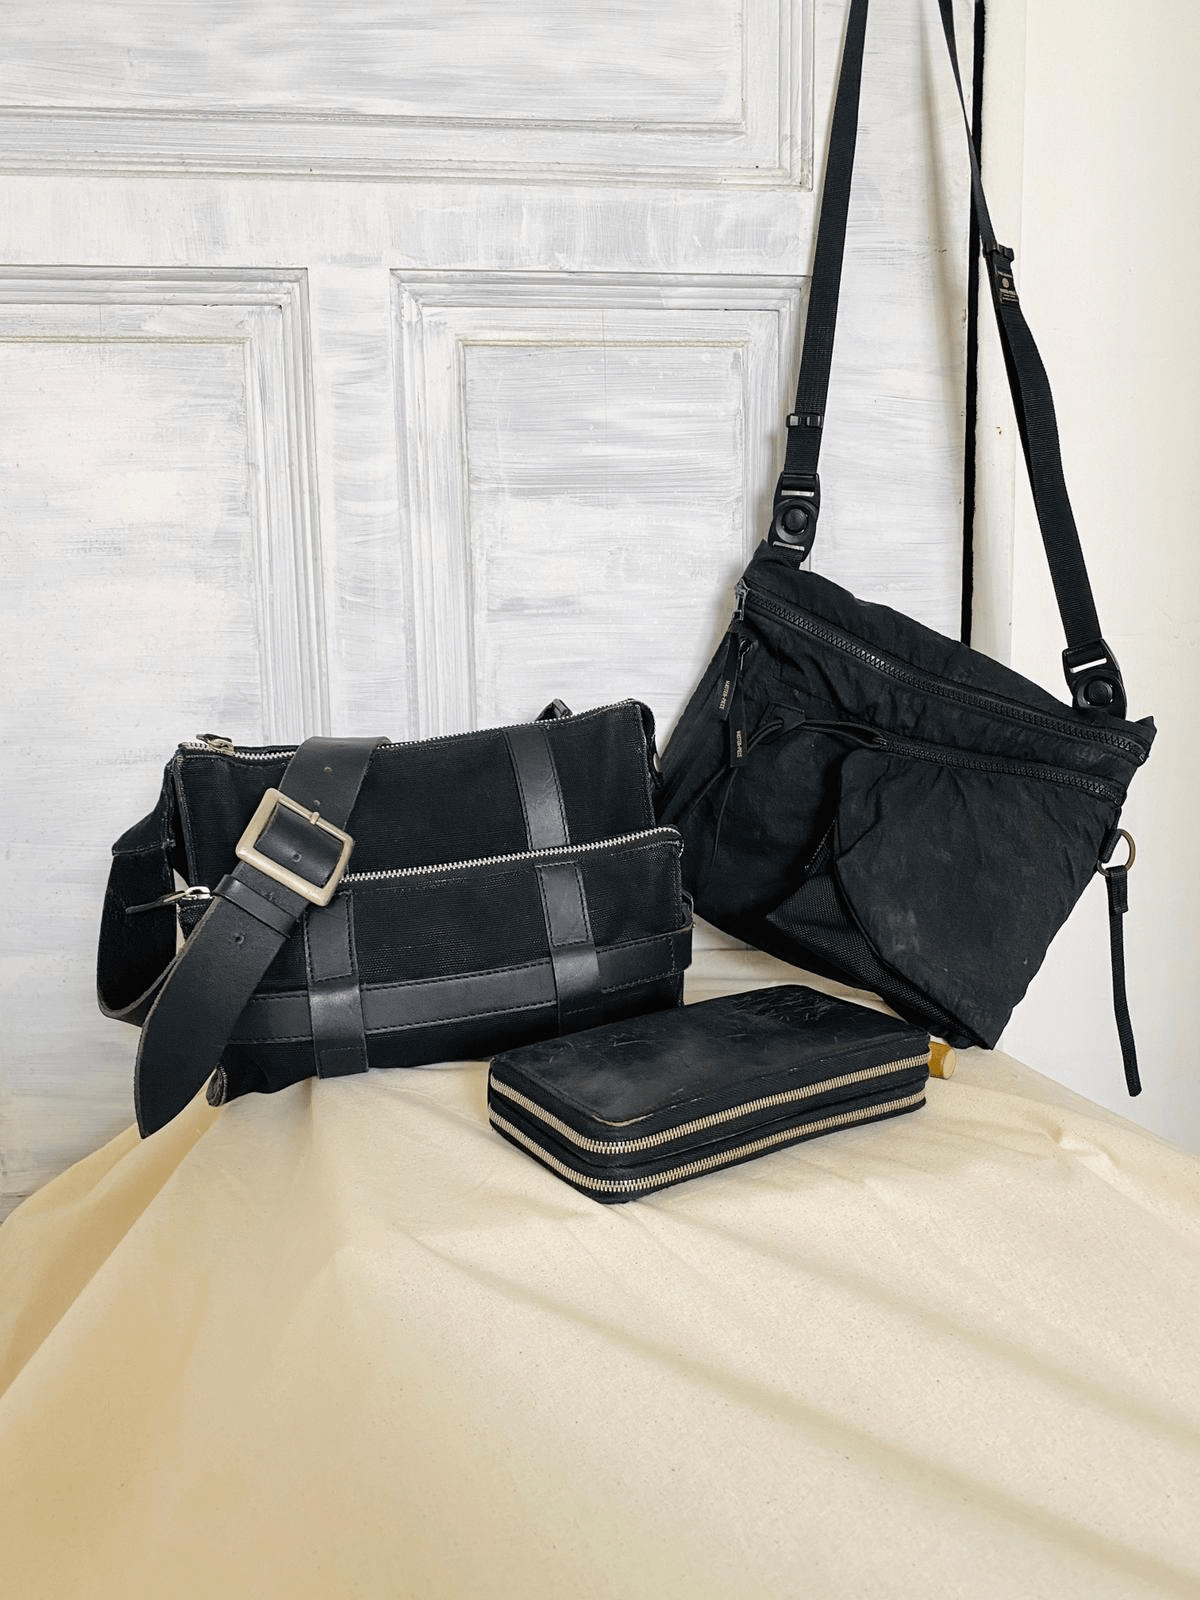 branded wallets and bags from Yohji Yamamoto